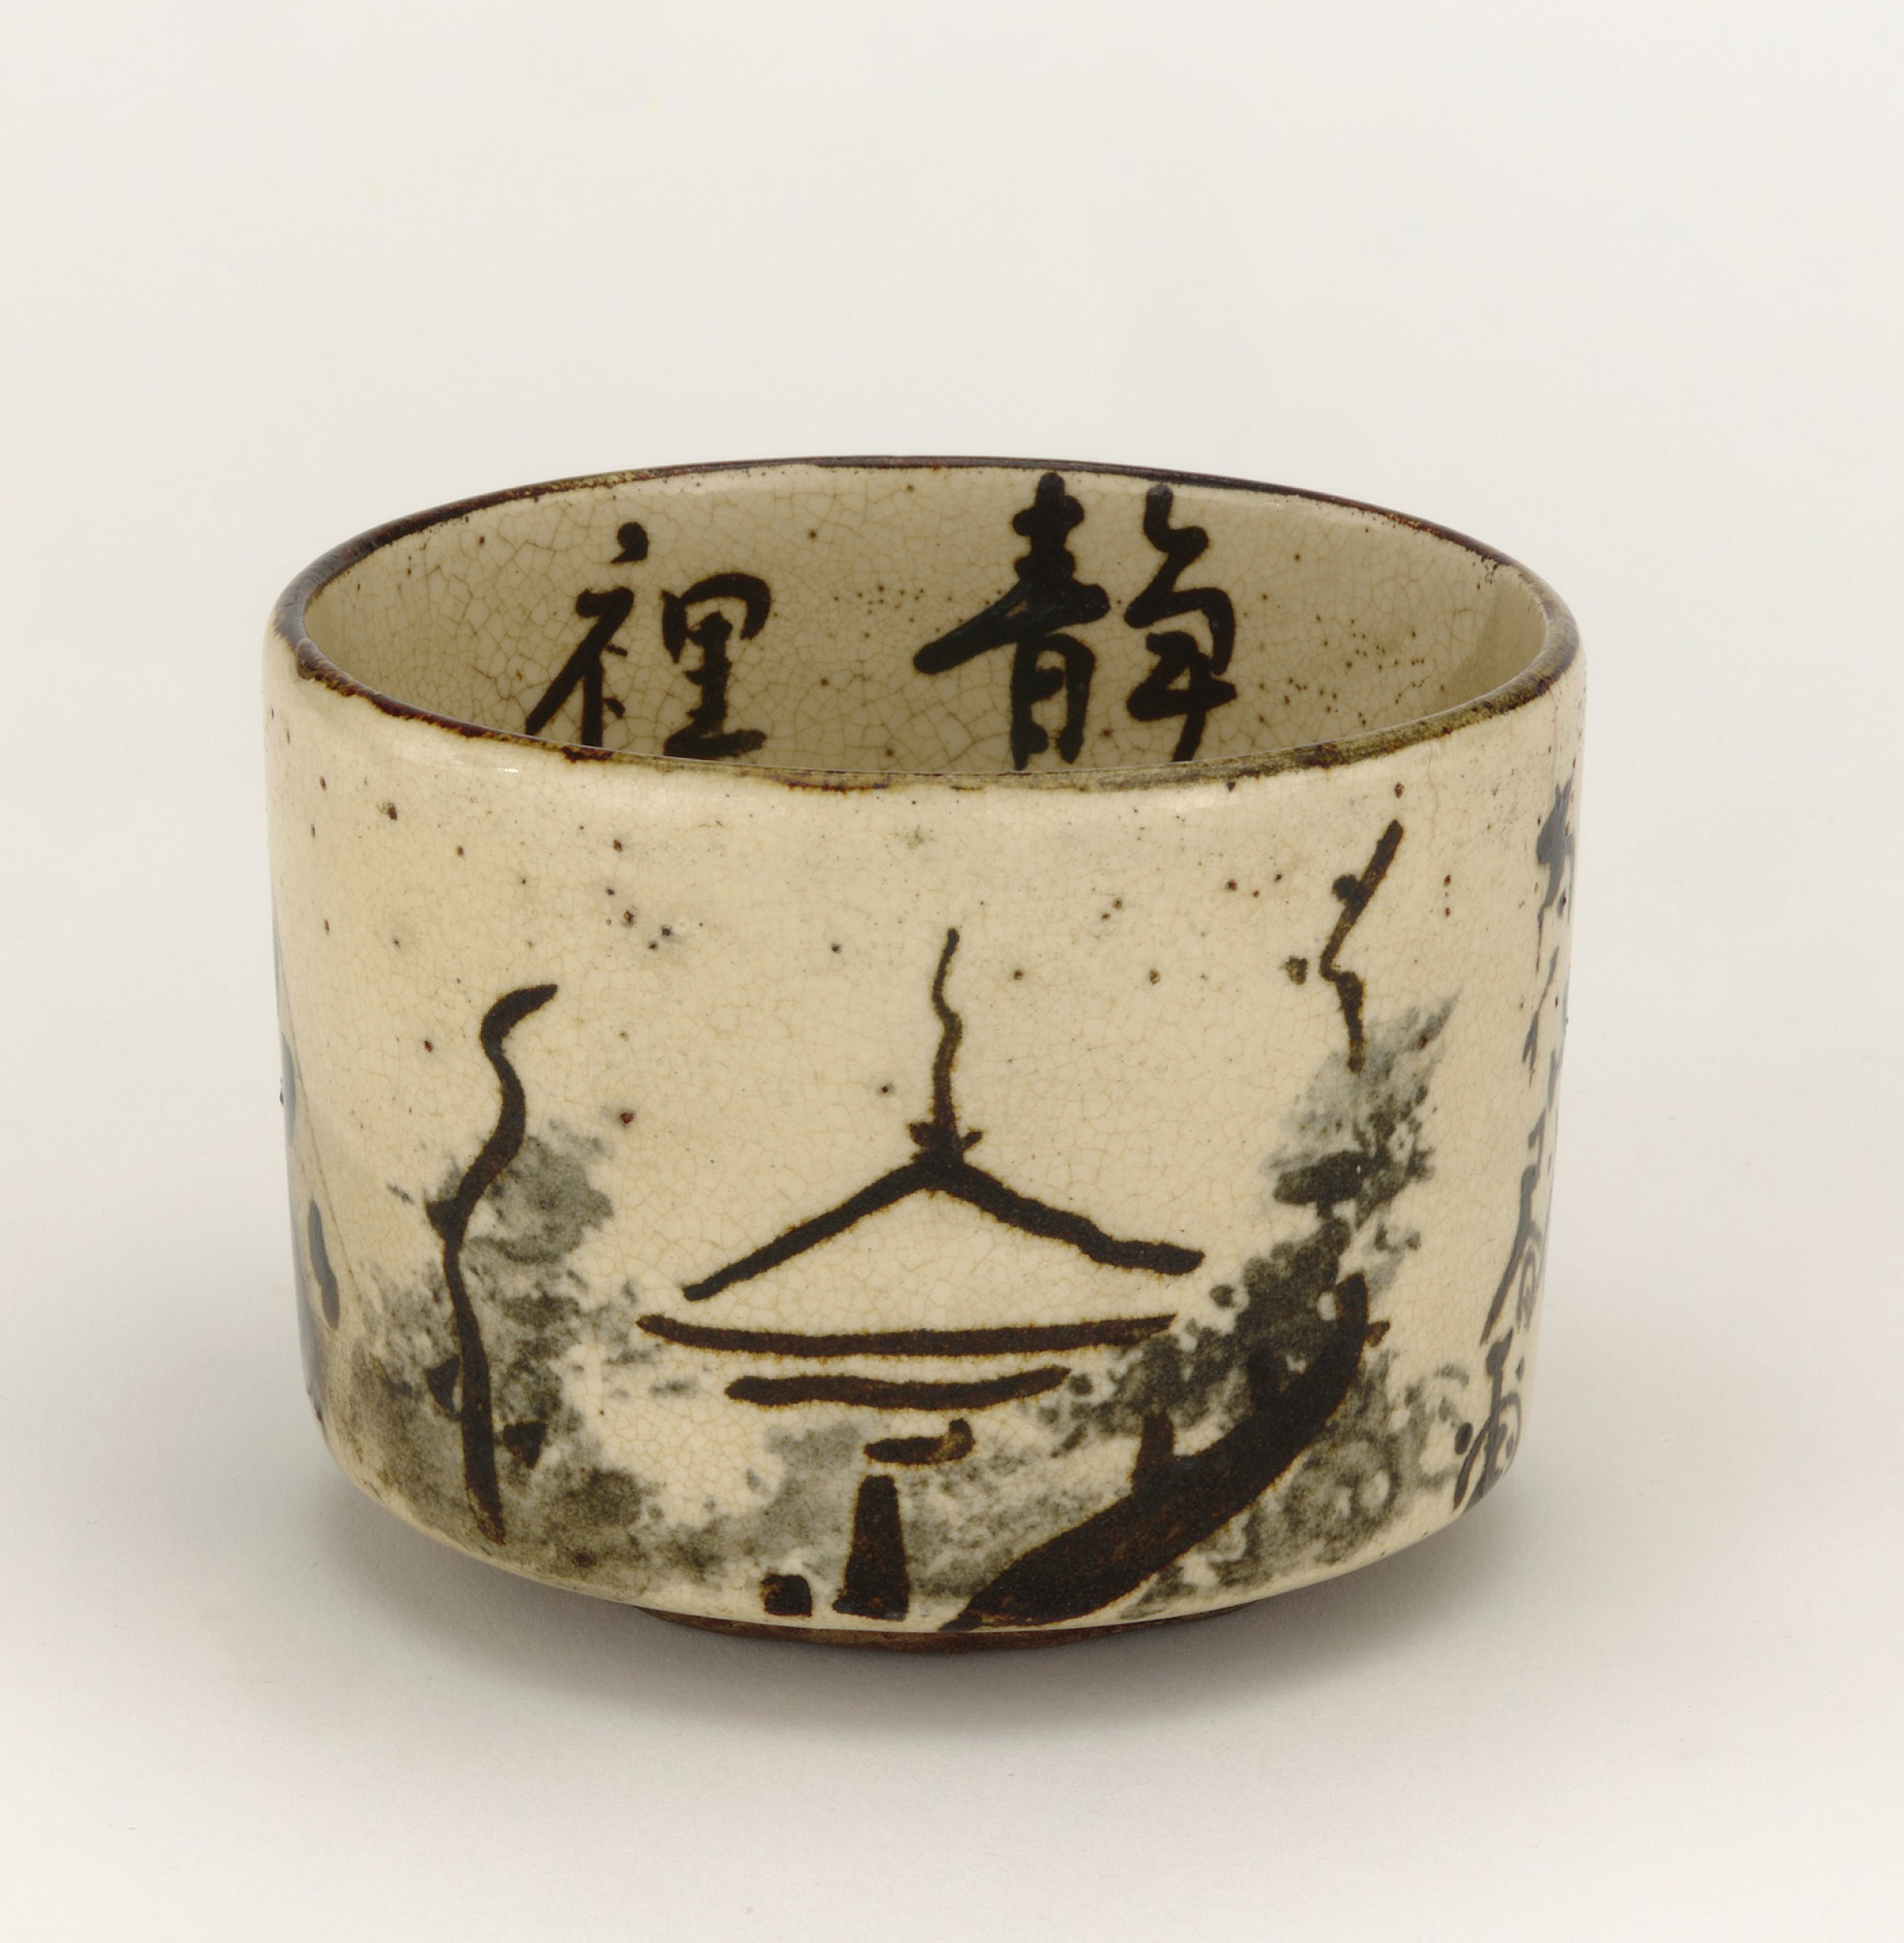 3/4 profile: Tea bowl with design of mountain retreat